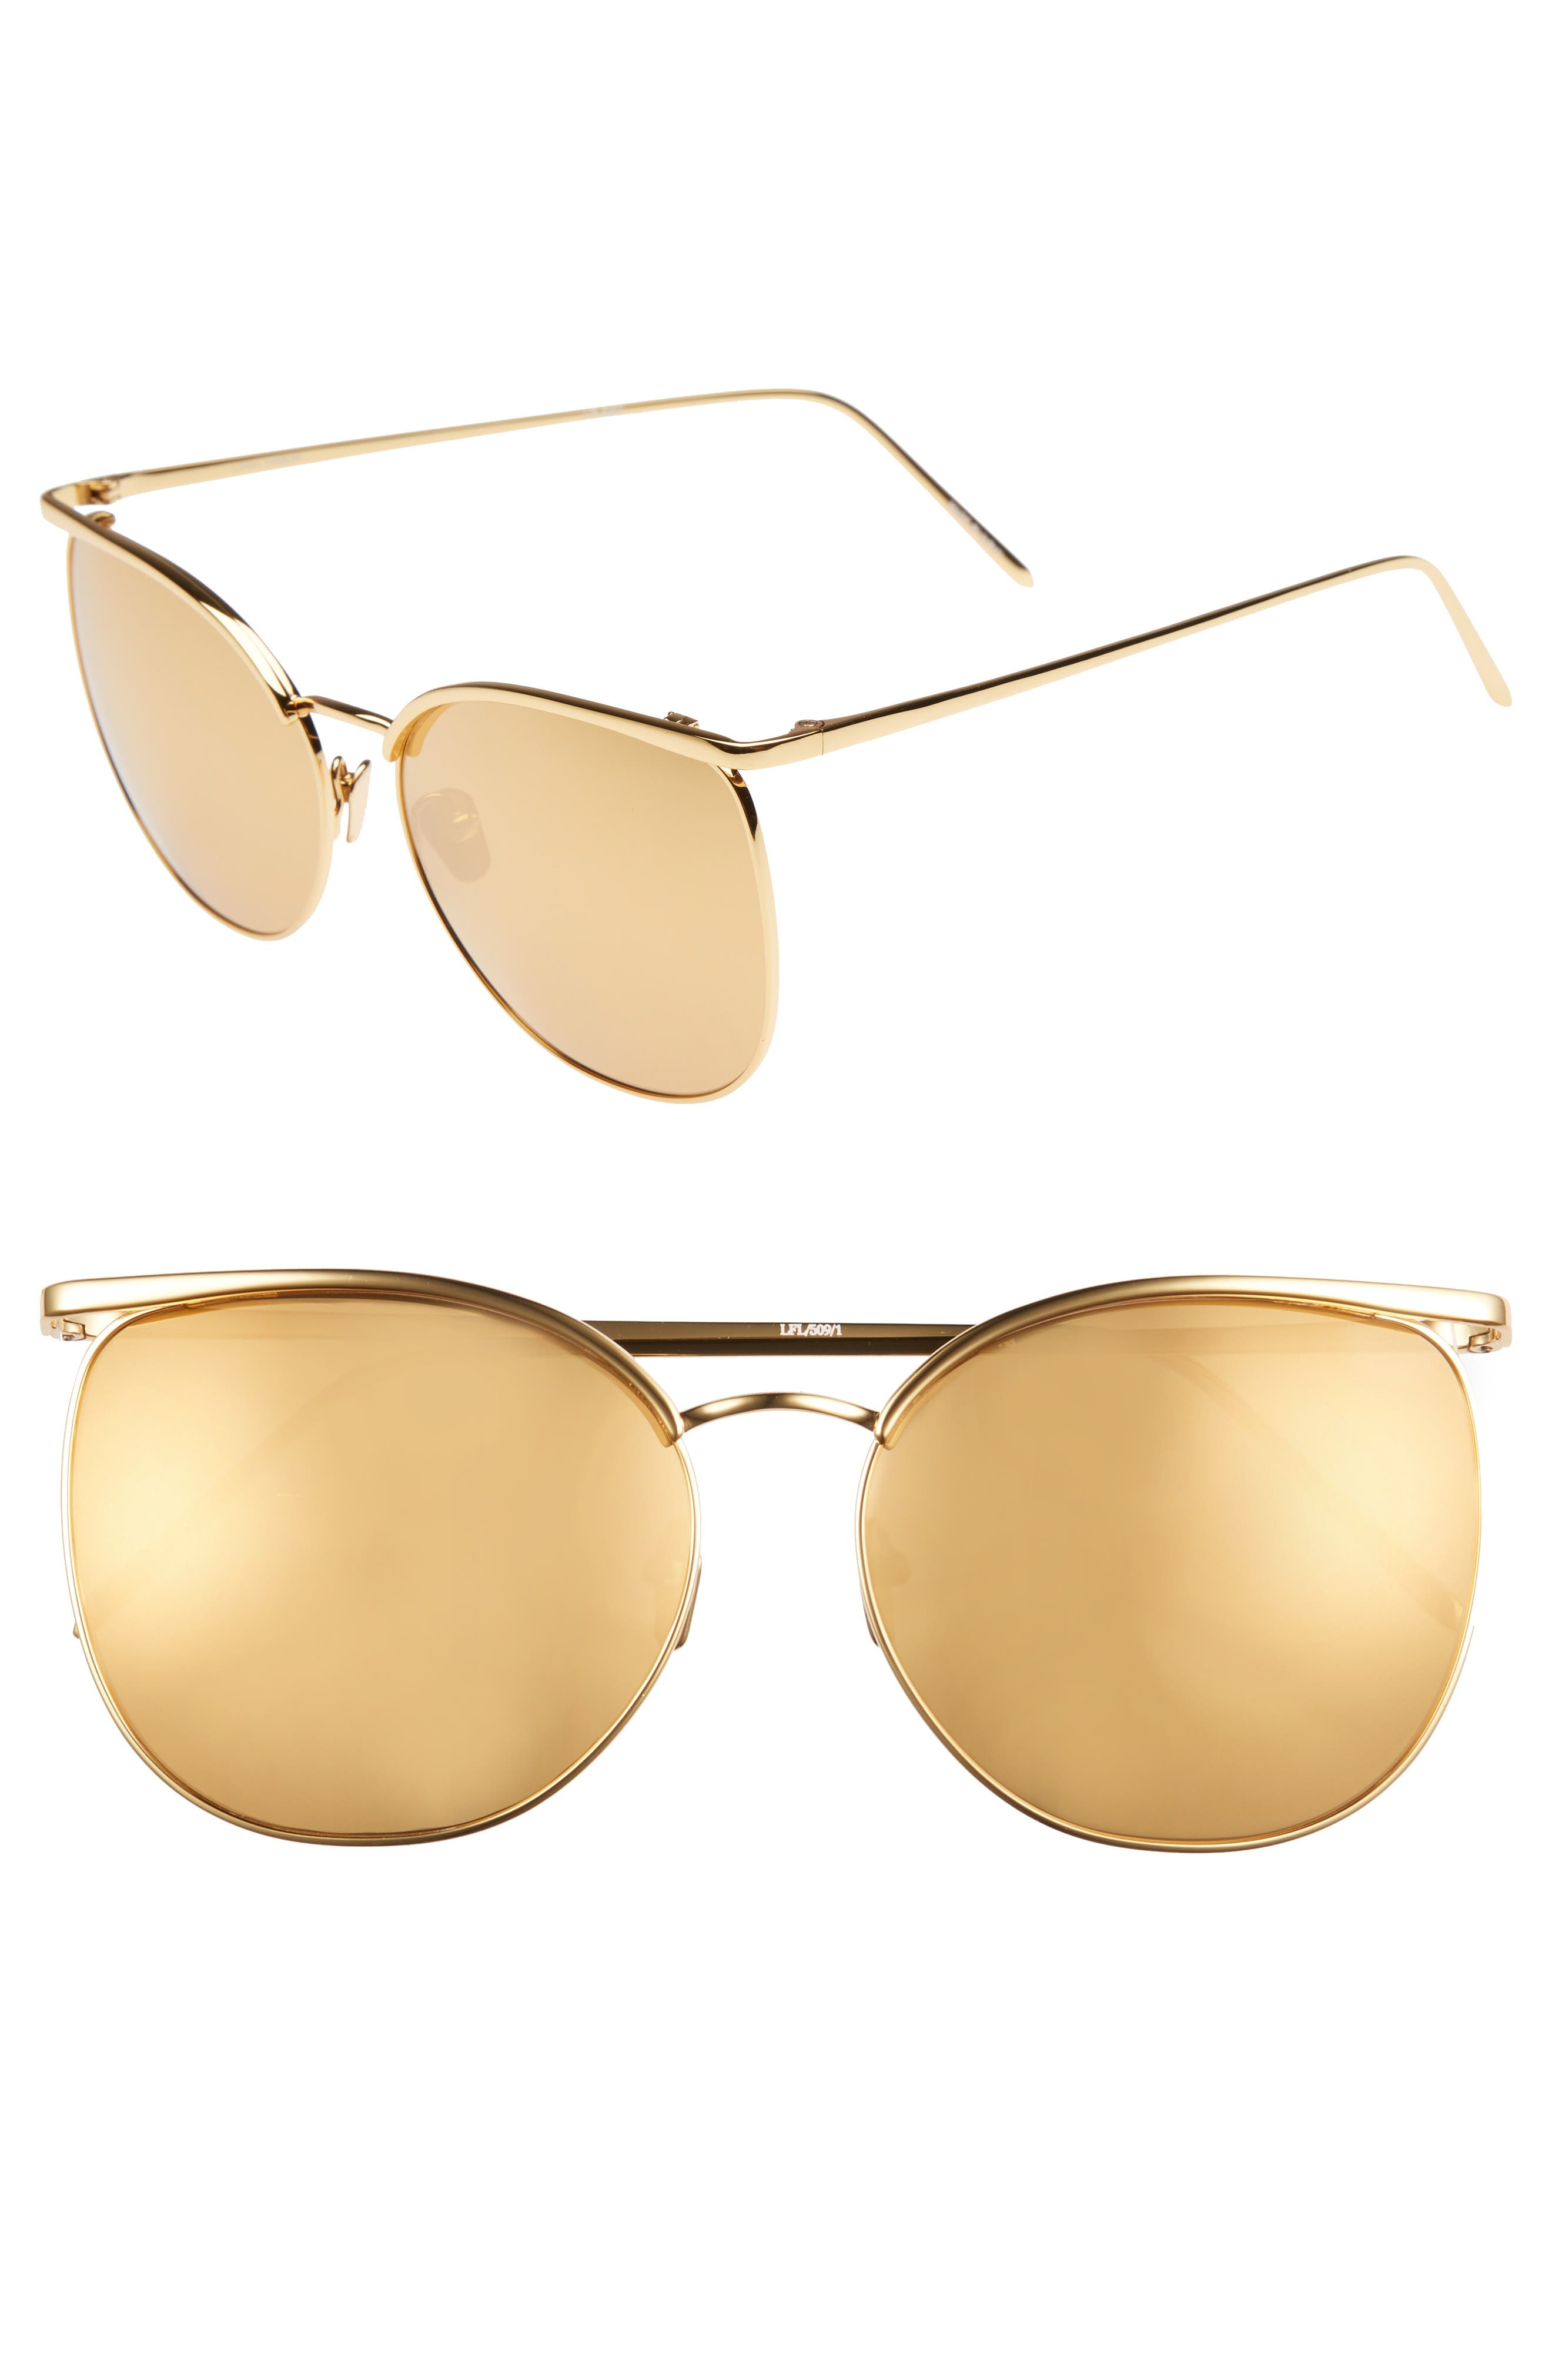 59mm Mirrored 22 Karat Gold Trim Sunglasses,                         Main,                         color, 710